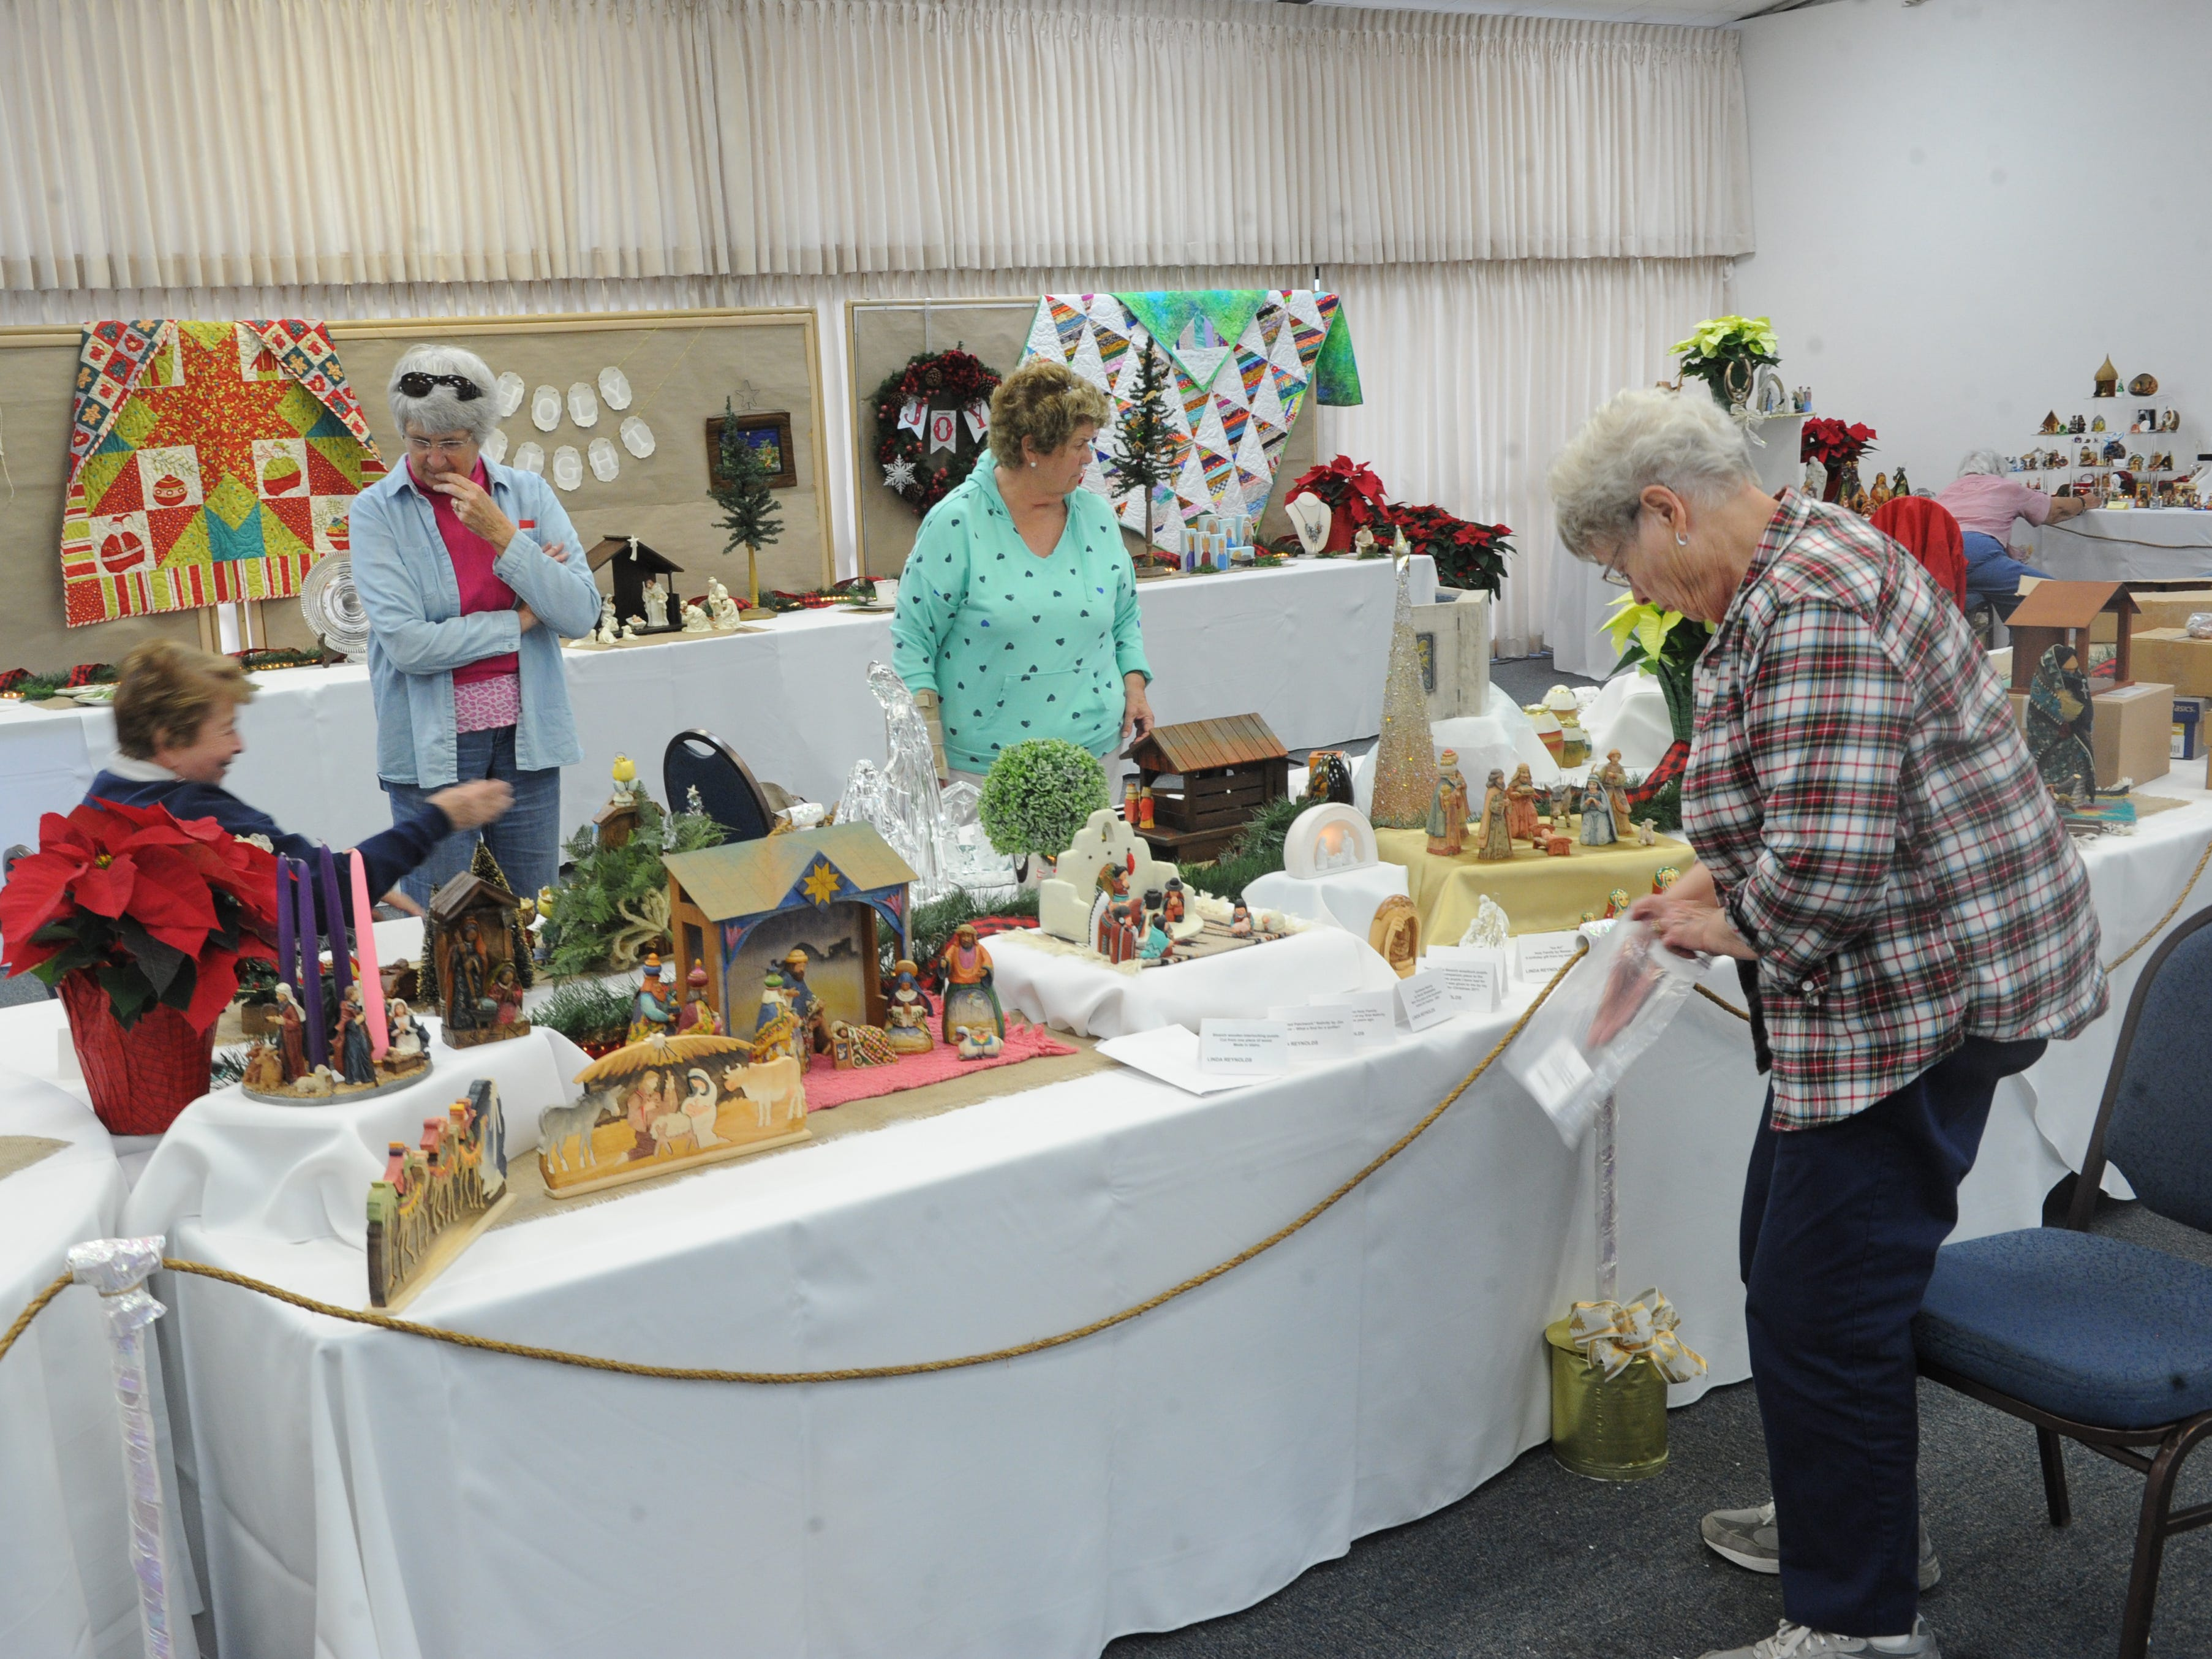 People set up Nativity displays for No Room at the Inn at the Camarillo United Methodist Church. The display runs through Sunday.